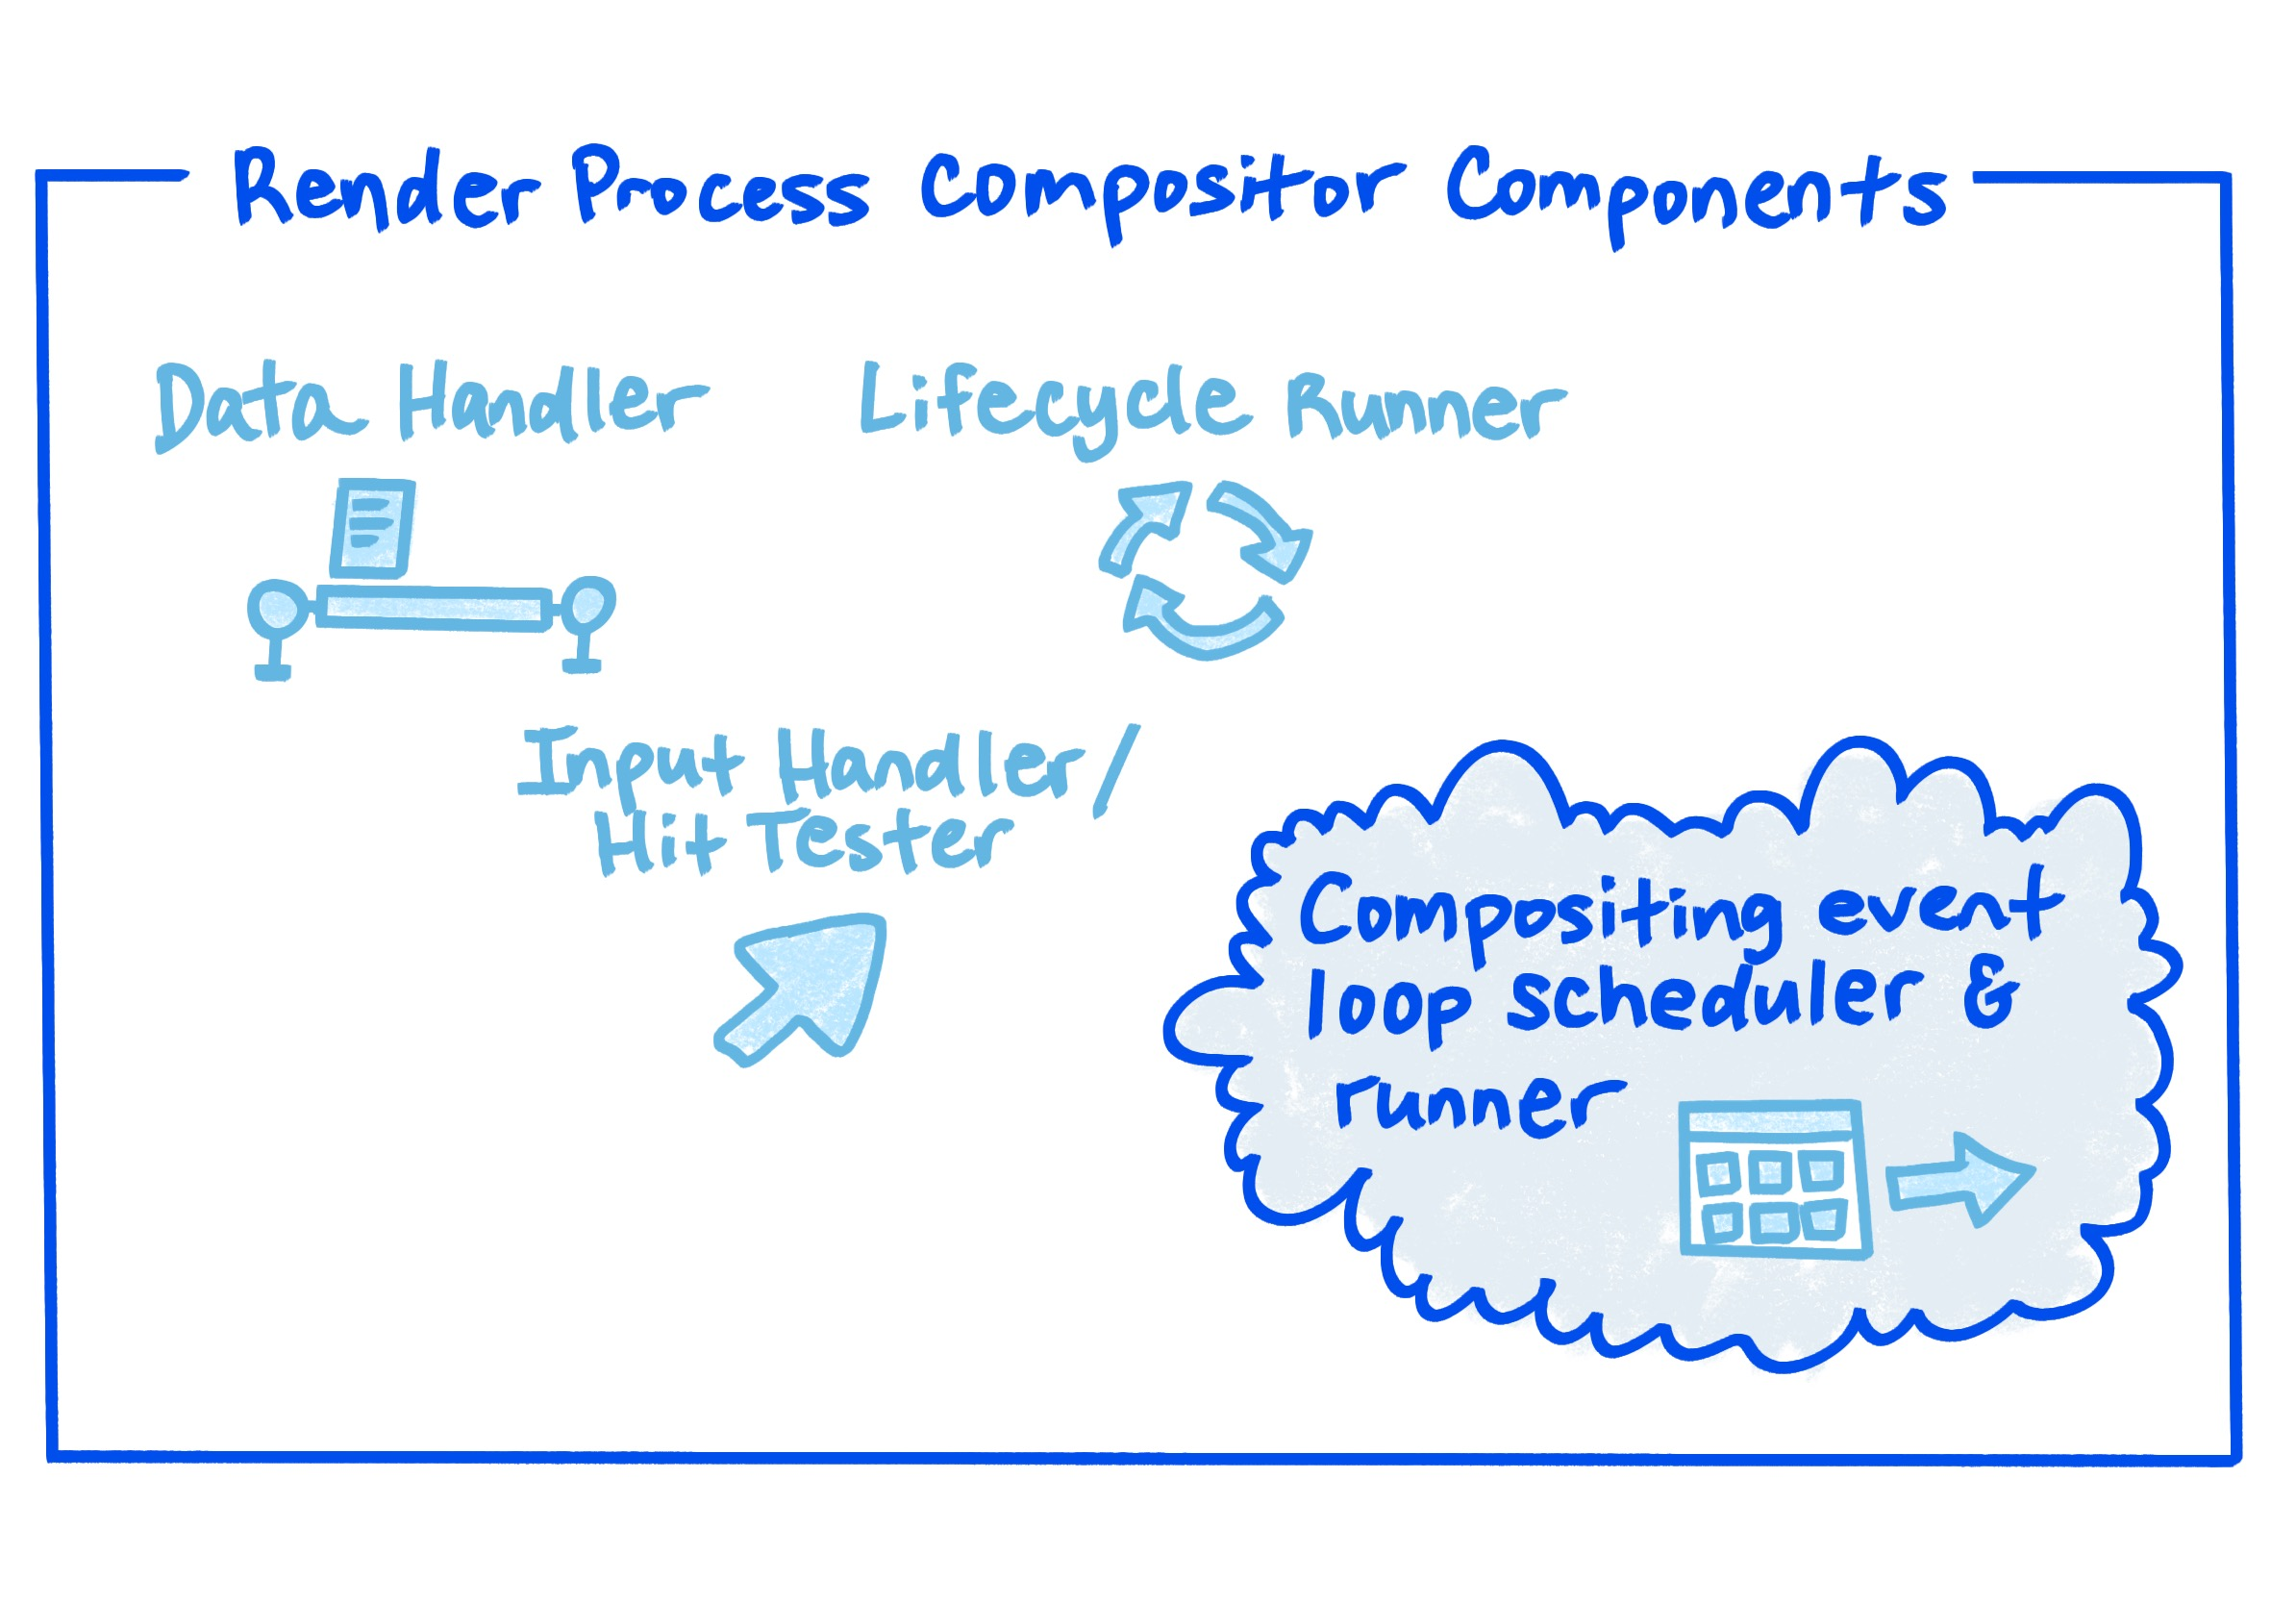 A diagram showing the render process compositor components.